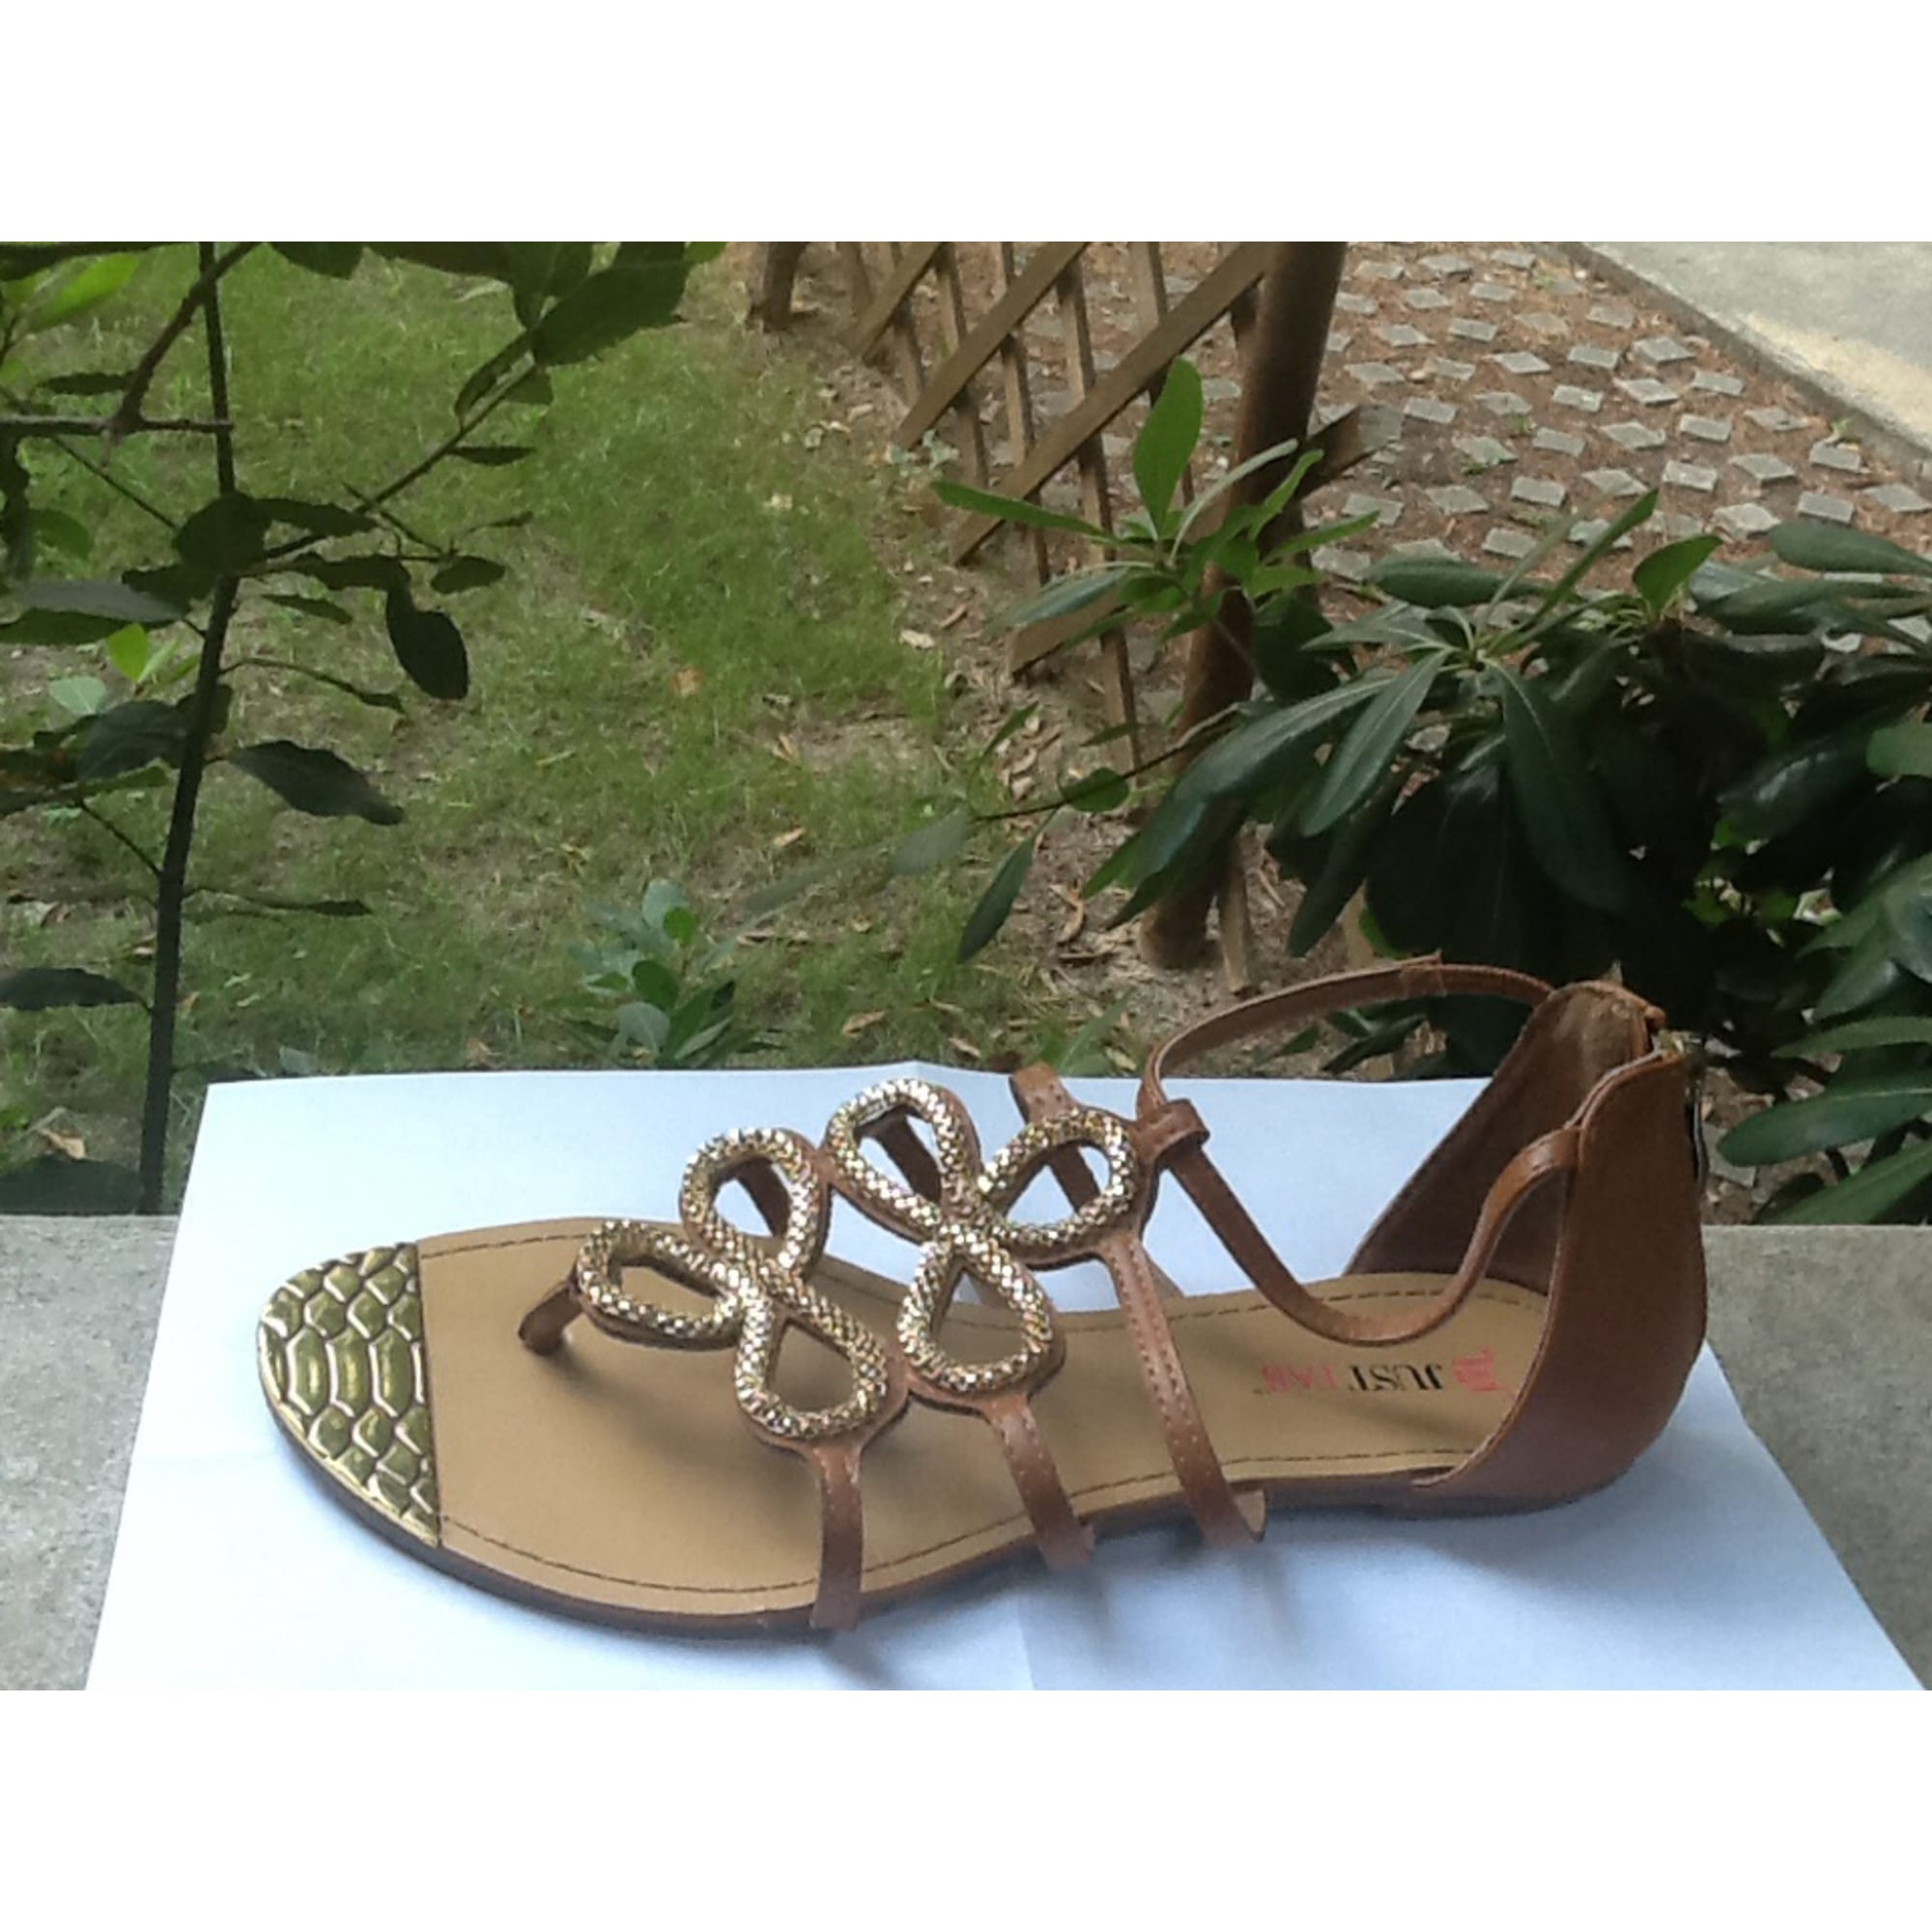 277a608779b Flat Sandals JUSTFAB 38 brown - 3851812